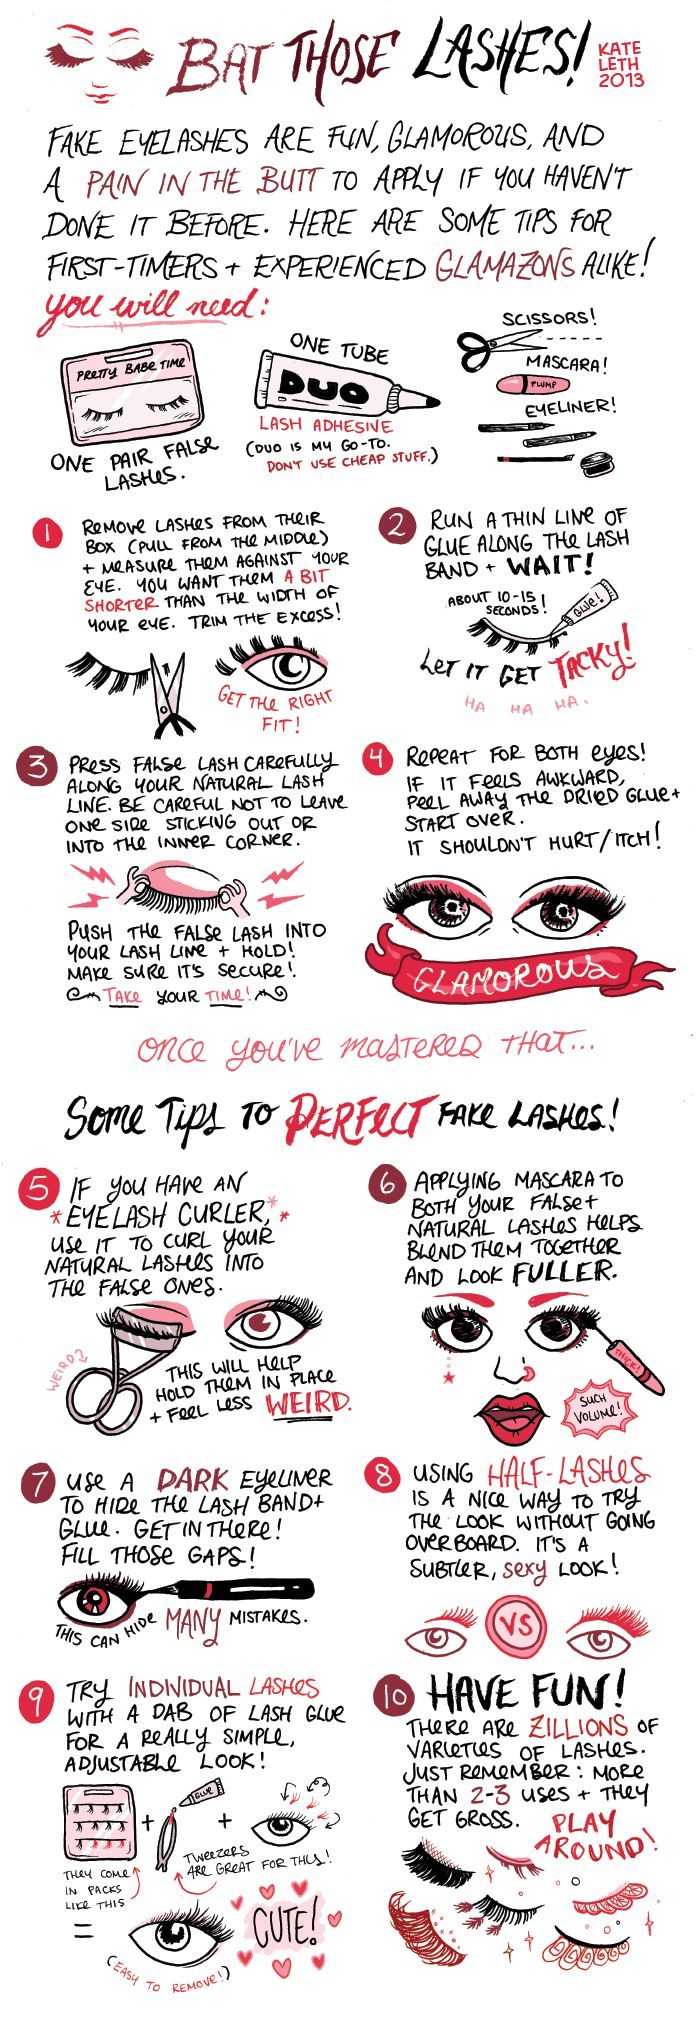 Kate Or Die drew a neat comic about false lashes! Another one about lipstick in the comments. - Imgur